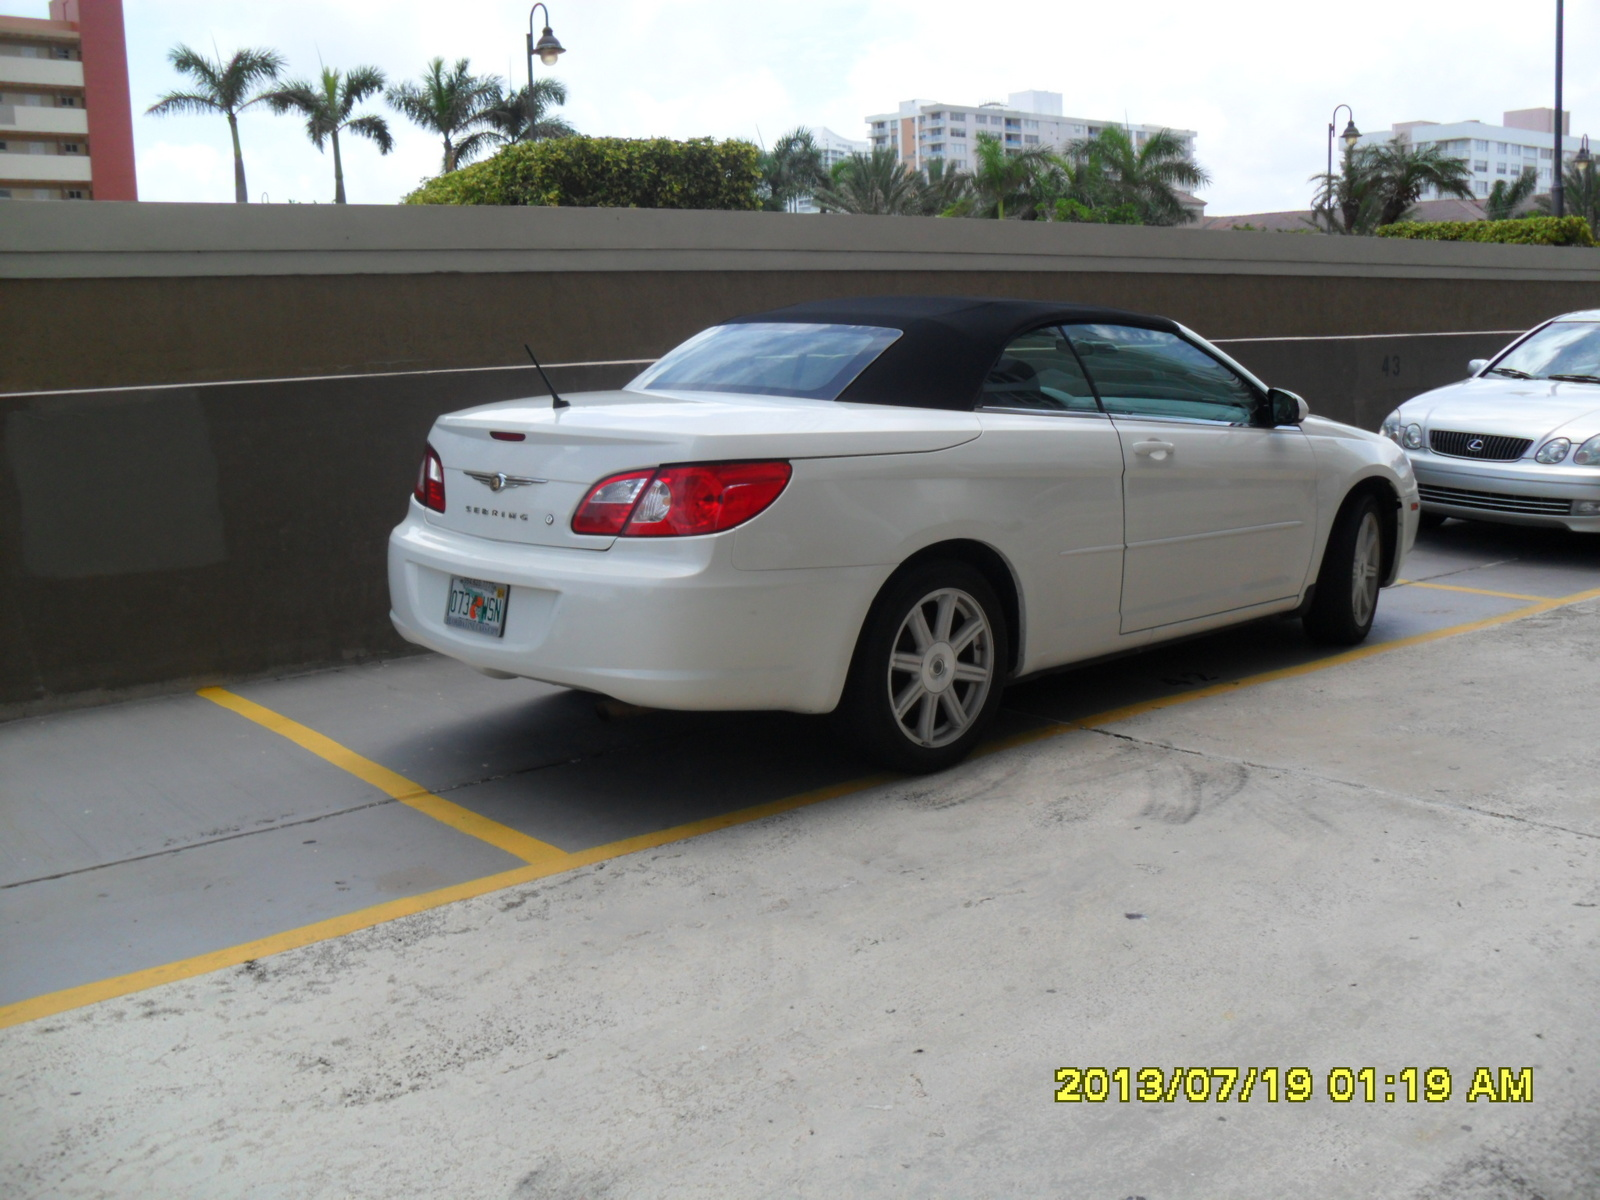 2008 chrysler sebring touring convertible picture exterior. Cars Review. Best American Auto & Cars Review